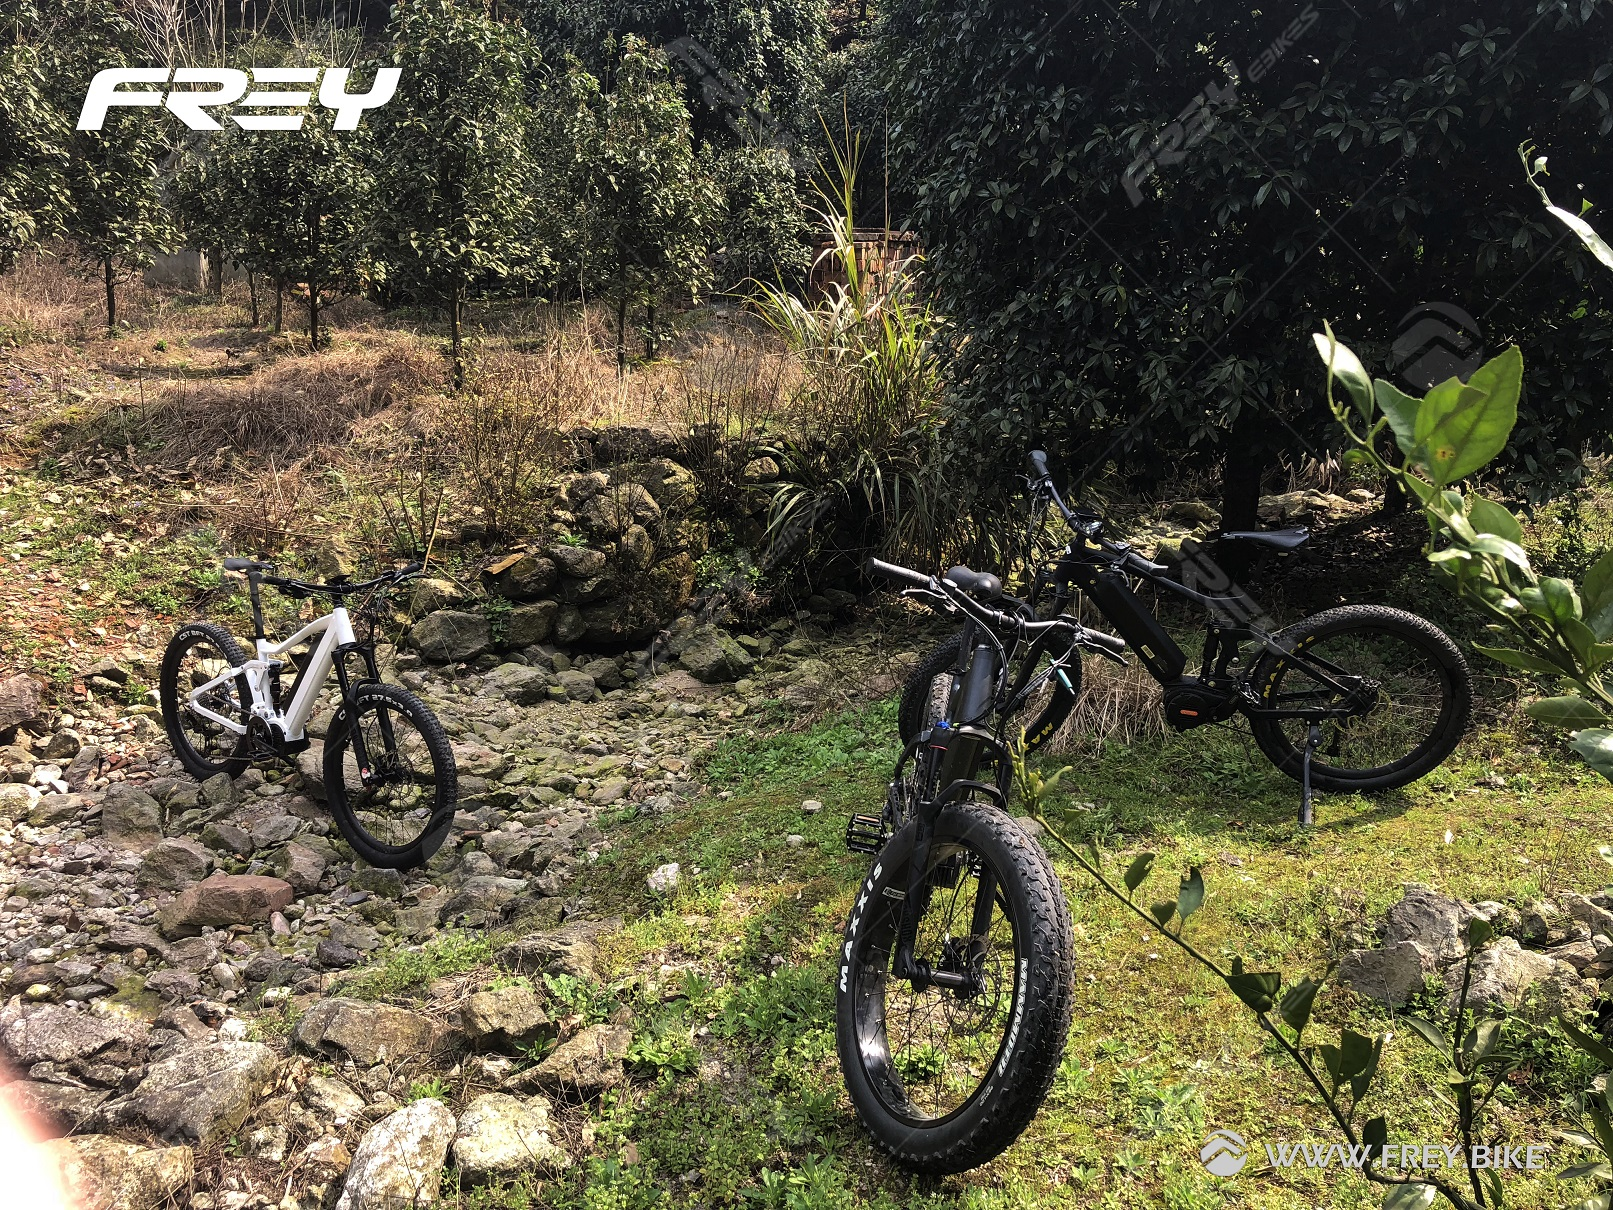 Frey AM1000 Bafang Mid Drive 1000W Elektrische Mountainbike Full Suspension Emtb Berg Ebike Enduro Ebike